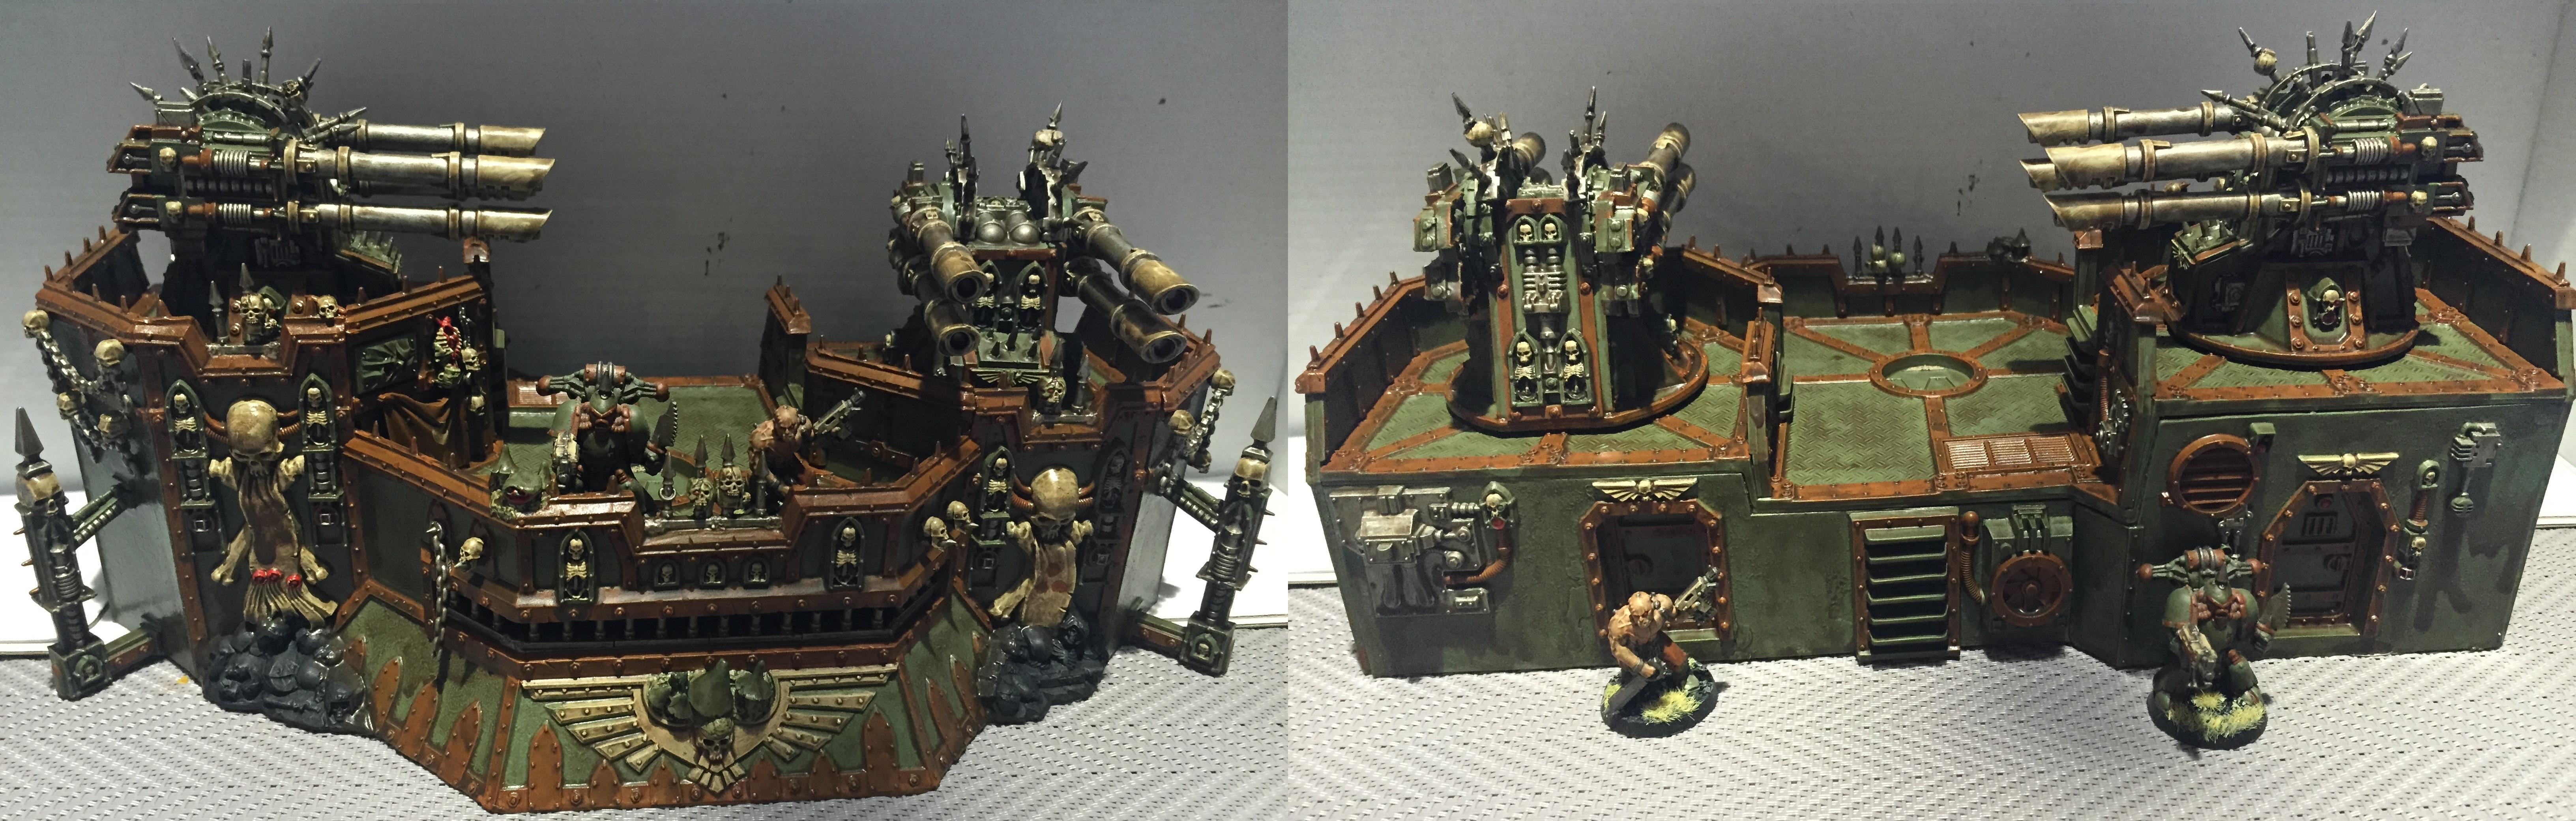 Chaos, Chaos Space Marines, Conversion, Dipped, Nurgle, Petrifications, Warhammer 40,000, Washed